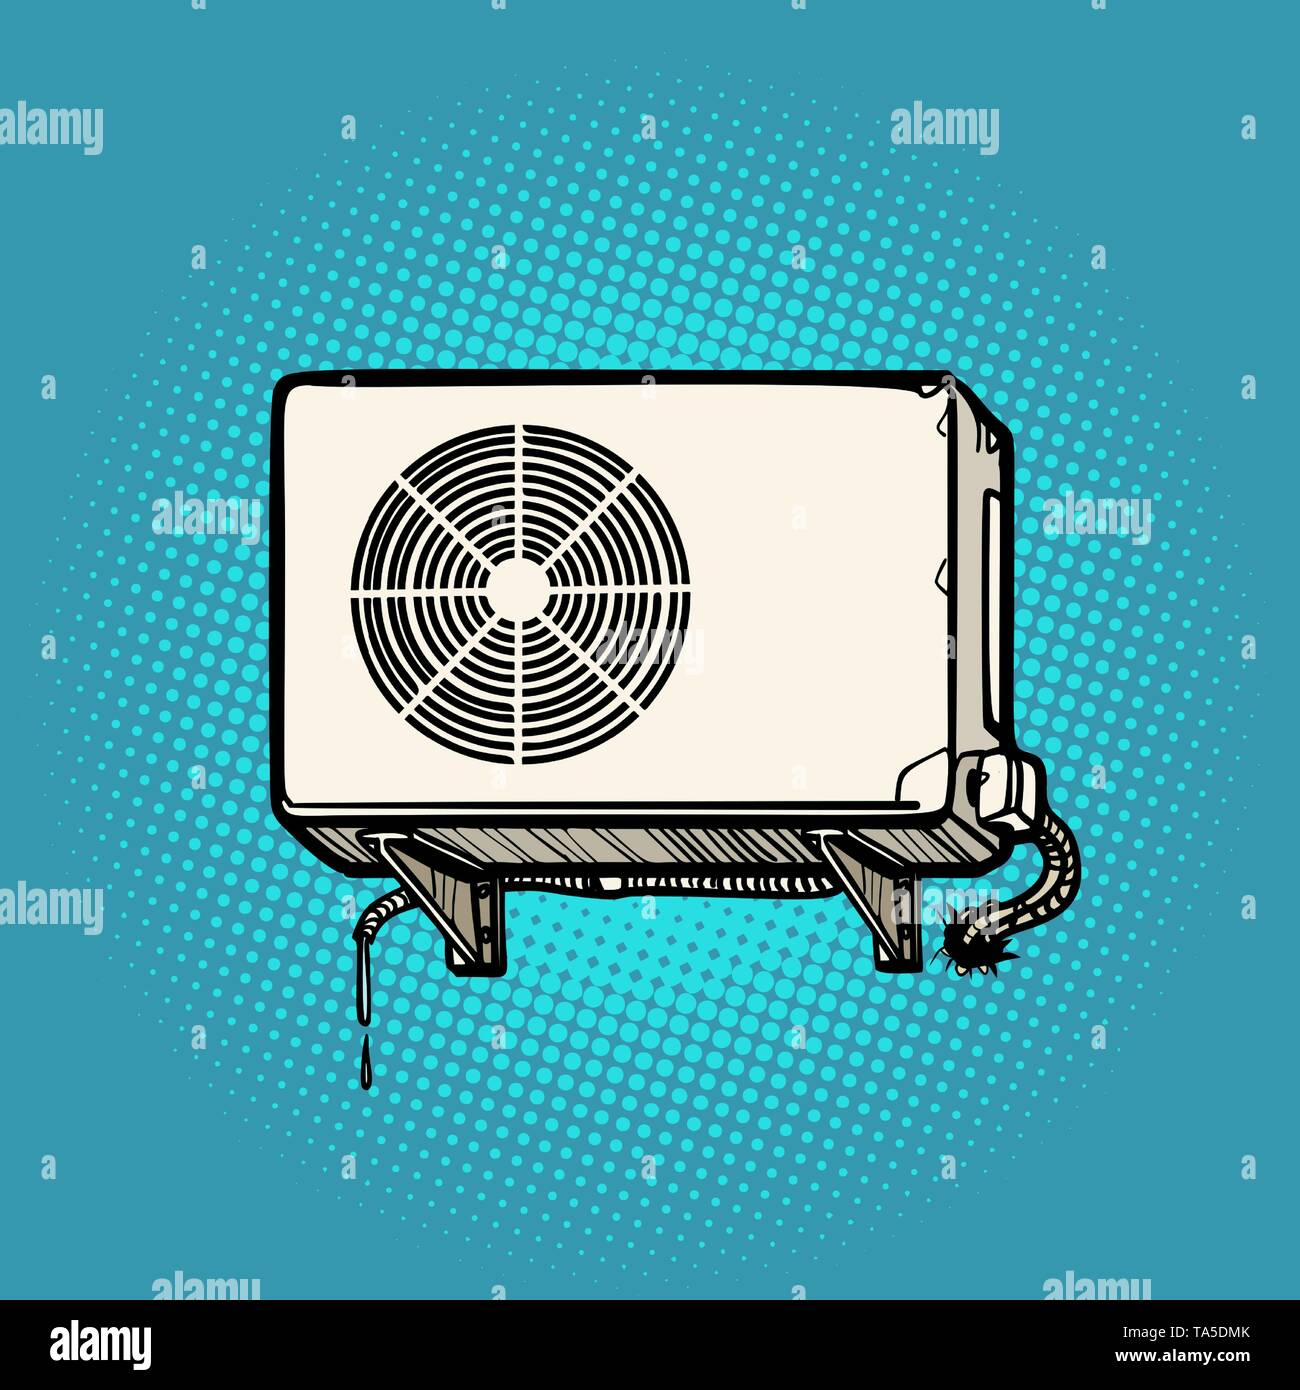 air conditioning on the outside wall - Stock Vector